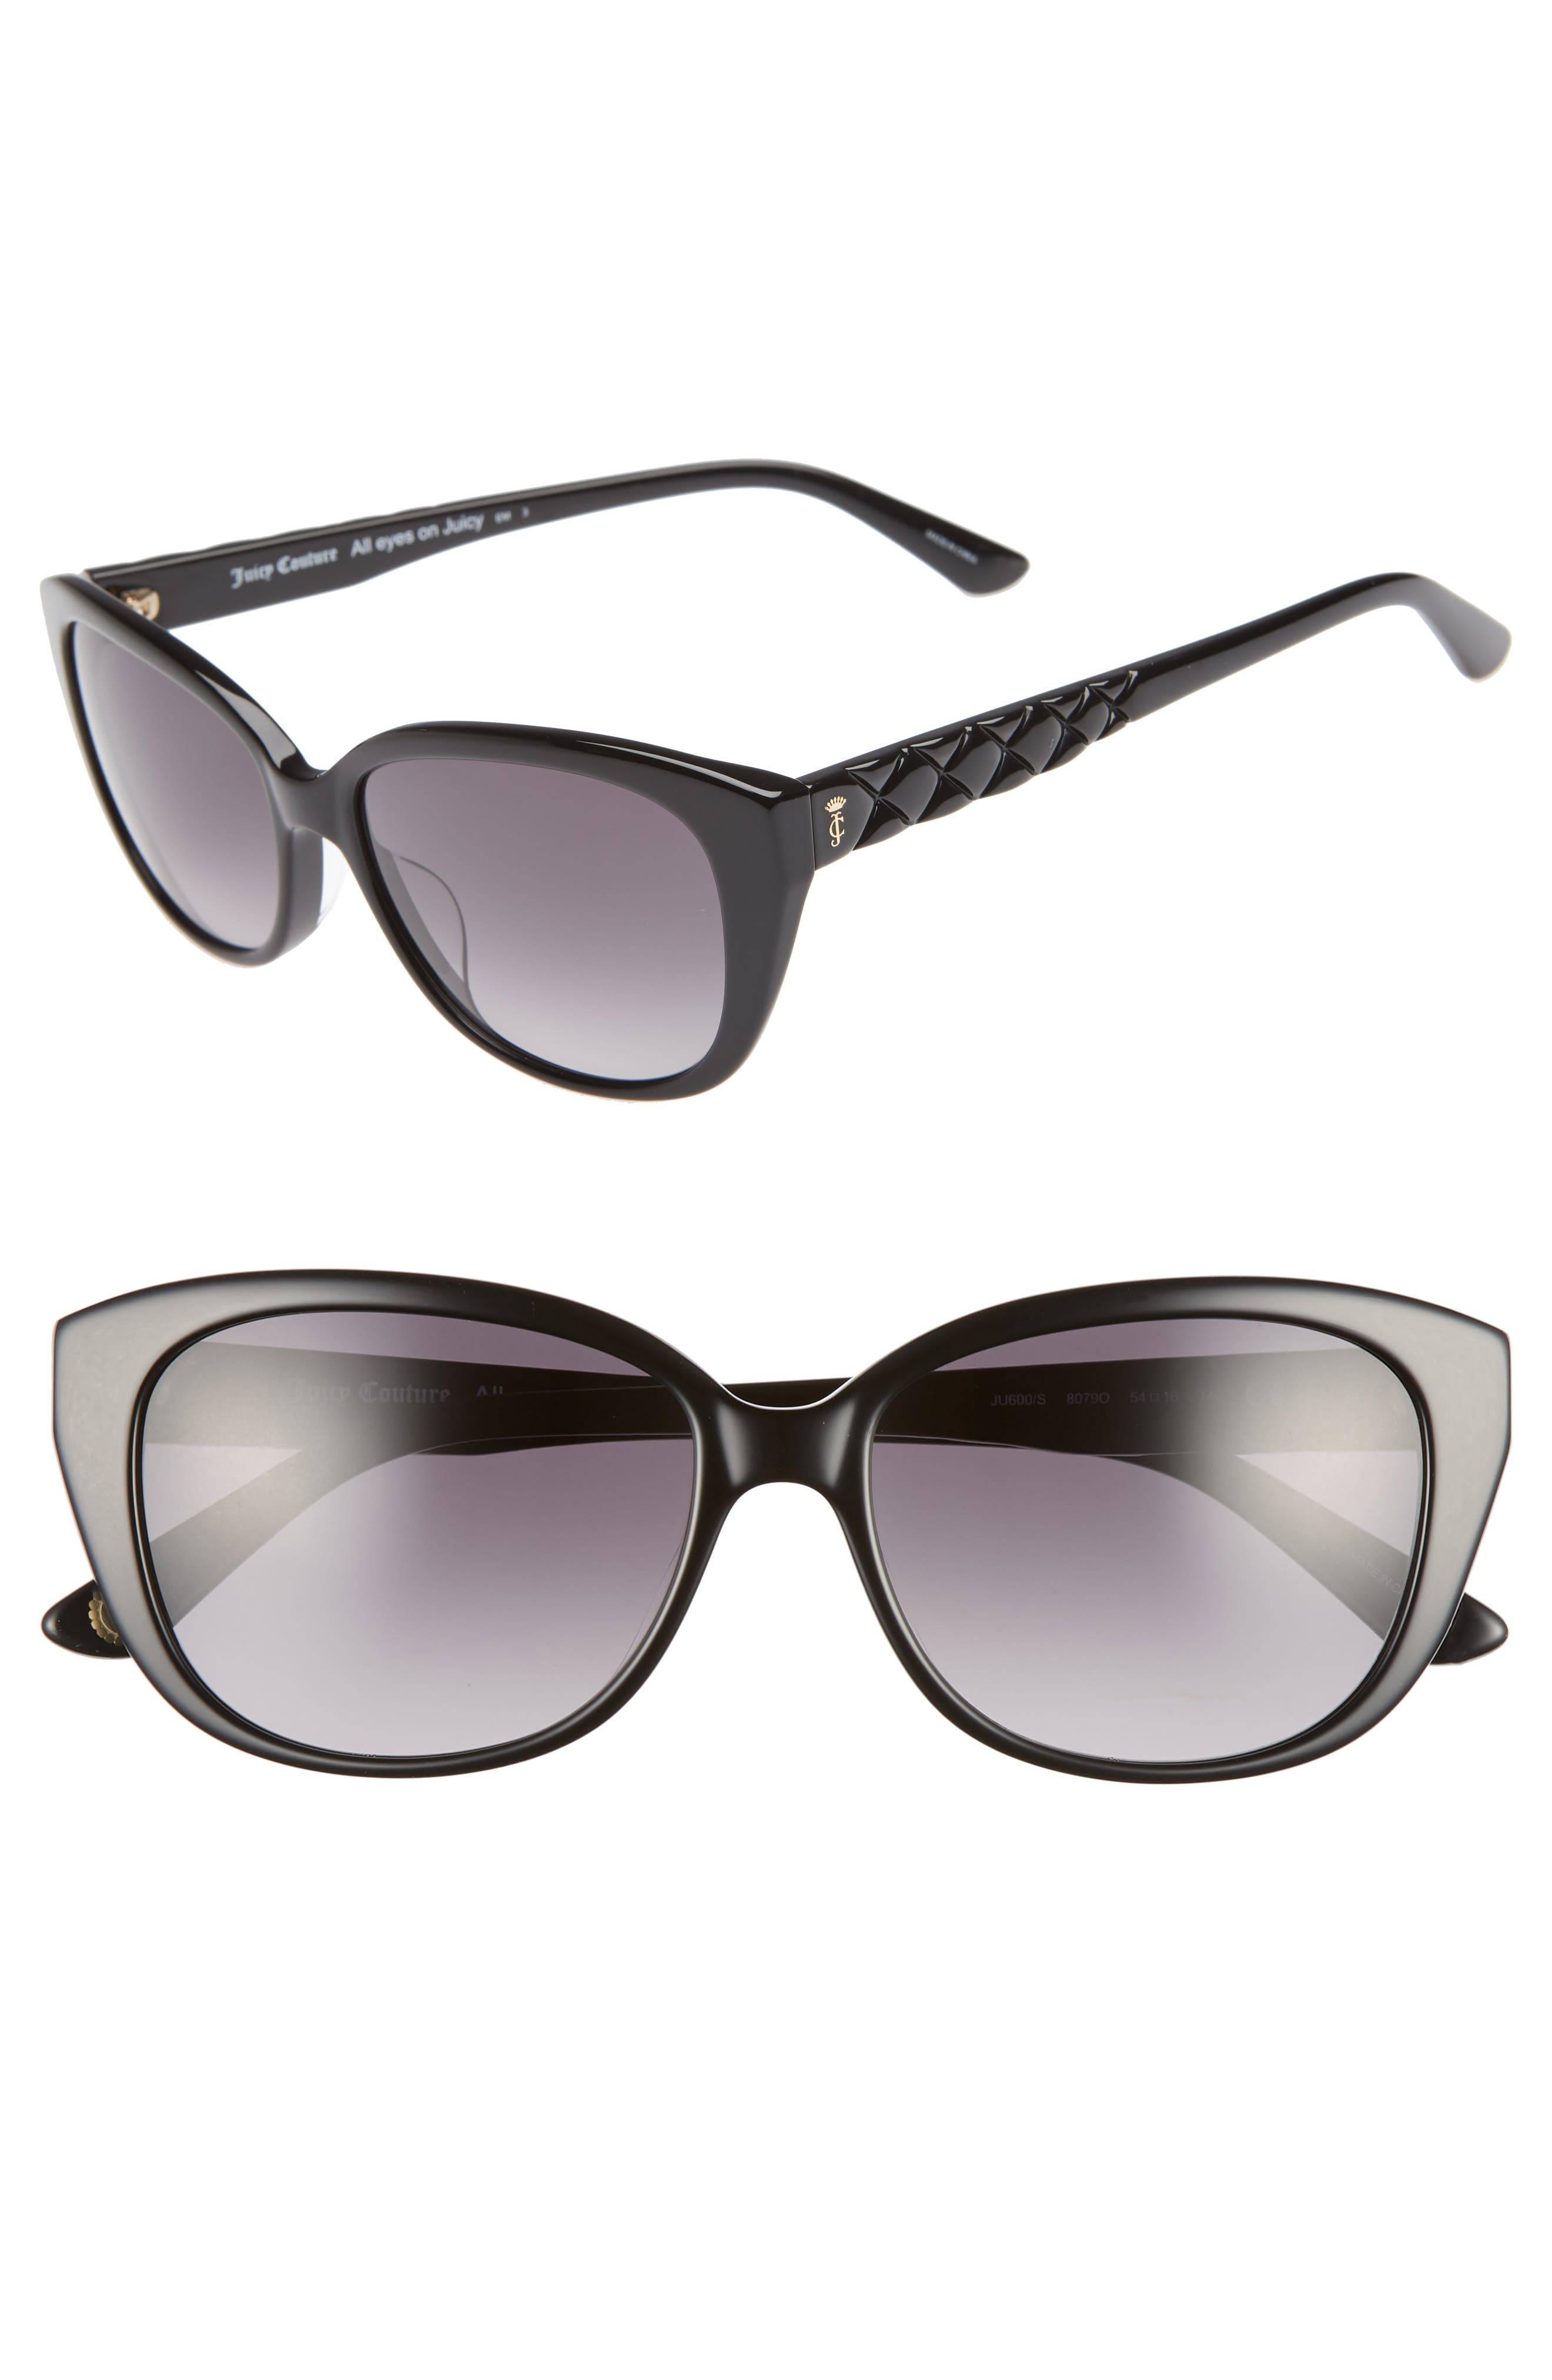 eaa128c714b0 Juicy Couture Sunglasses for Women